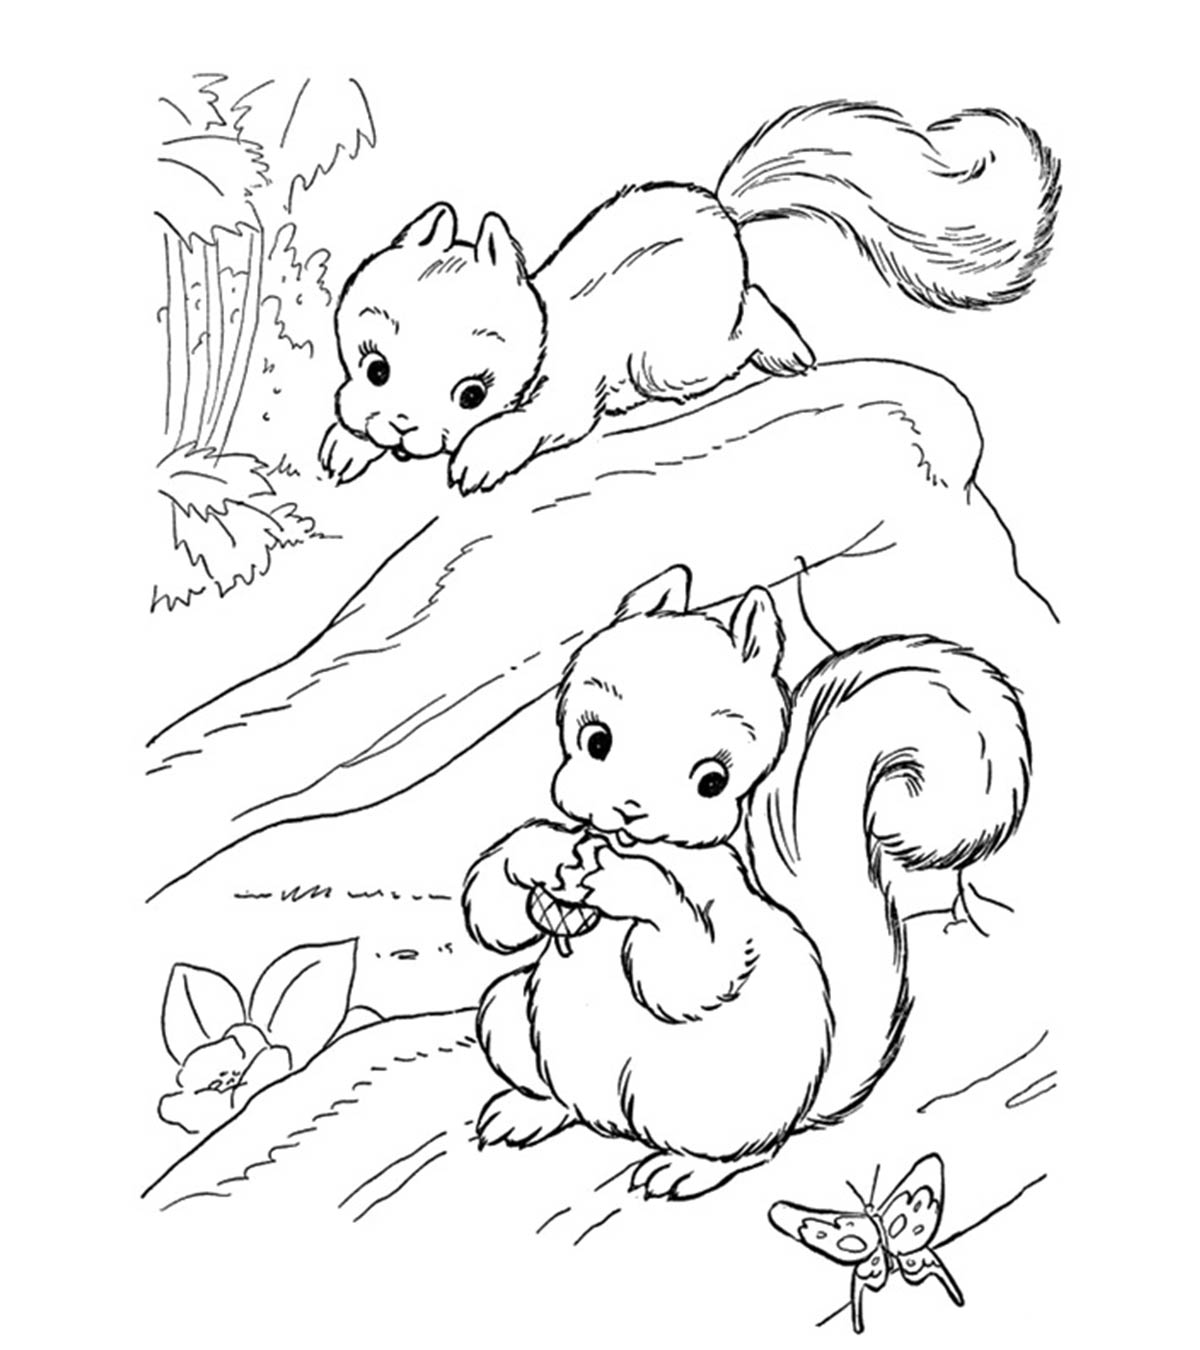 graphic relating to Printable Squirrel Target referred to as Squirrel Coloring Sheet Photograph Al - Sabadaphnecottage